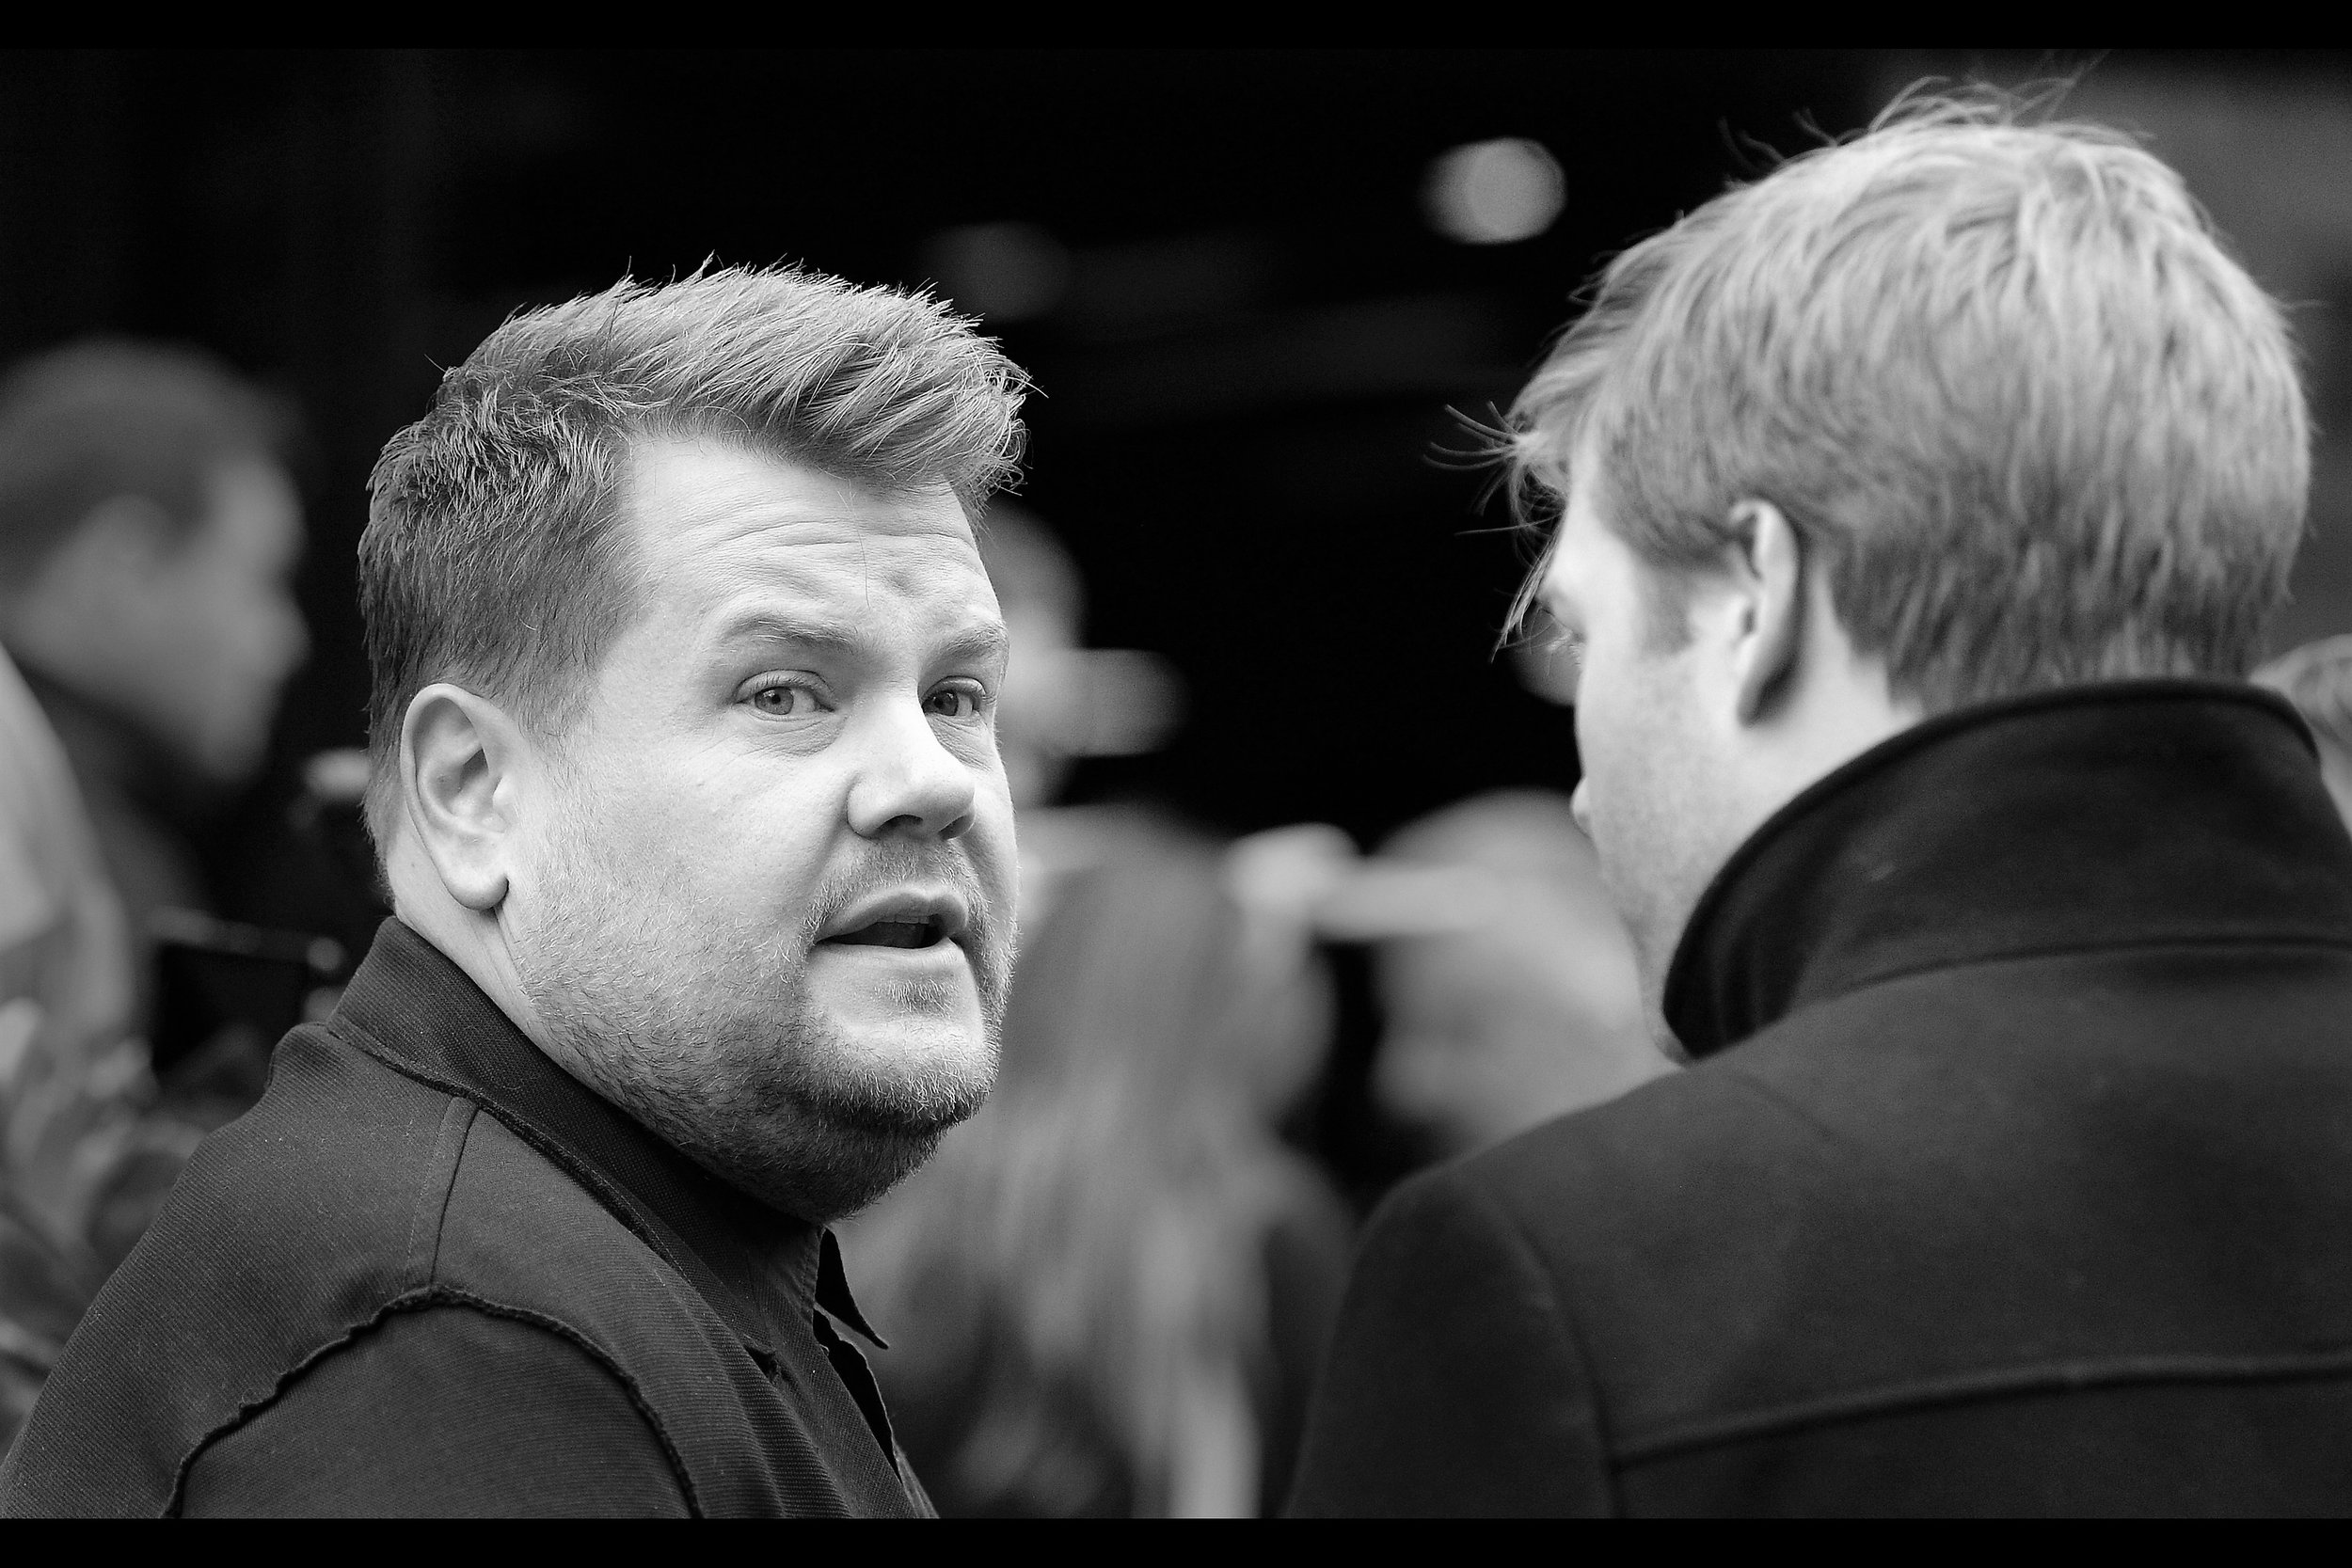 Finally photographed : the voice of this movie's titular hero Peter Rabbit : James Corden.